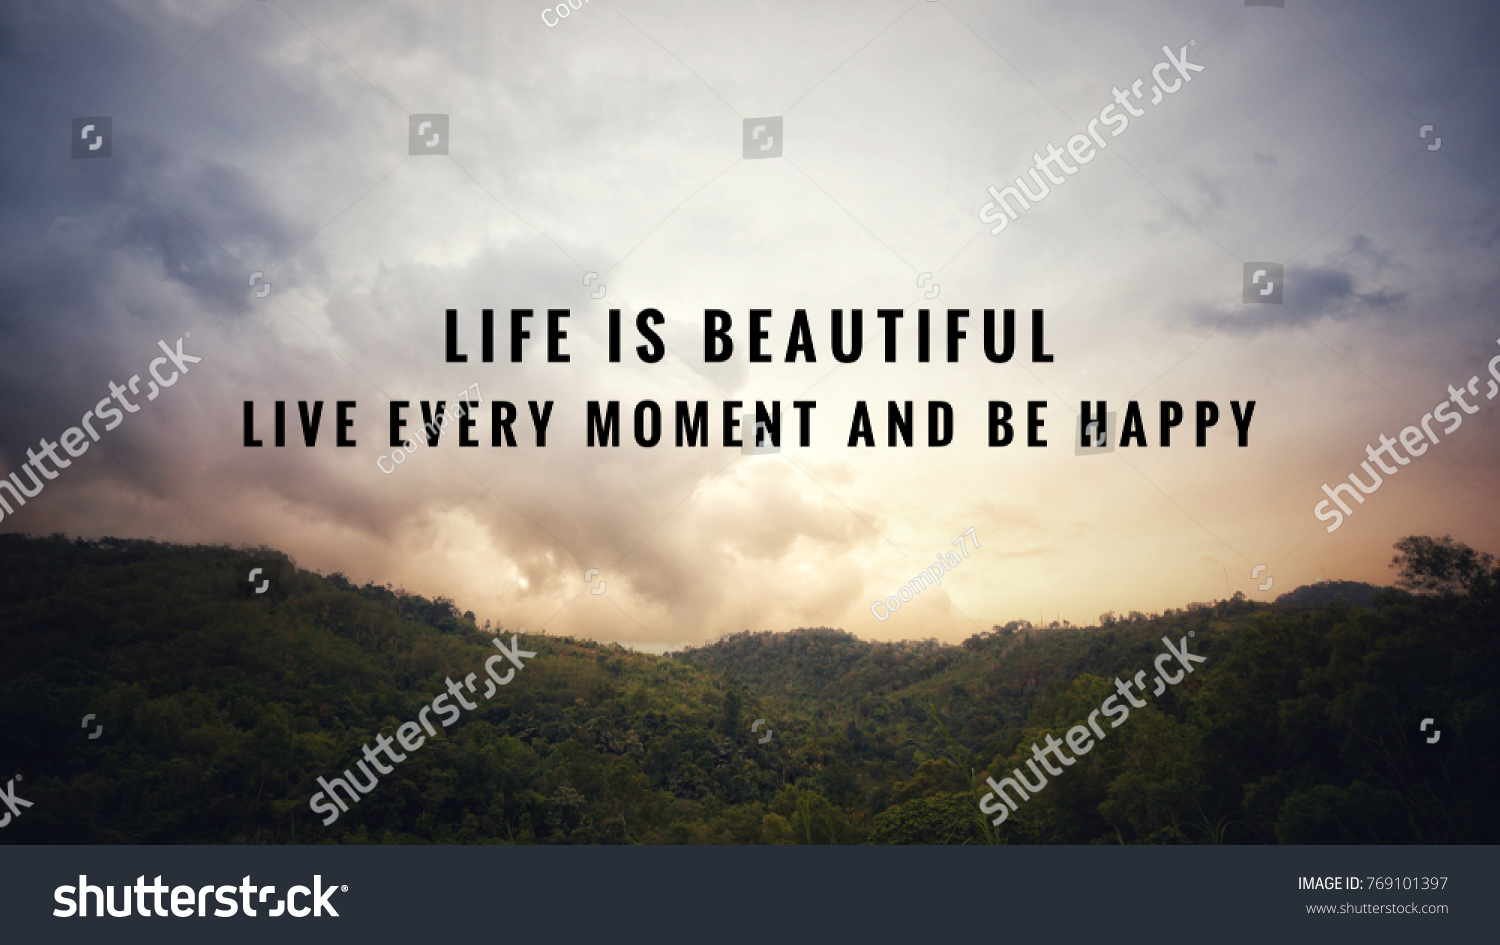 Motivational And Inspirational Quotes   Life Is Beautiful. Live Every  Moment And Be Happy.